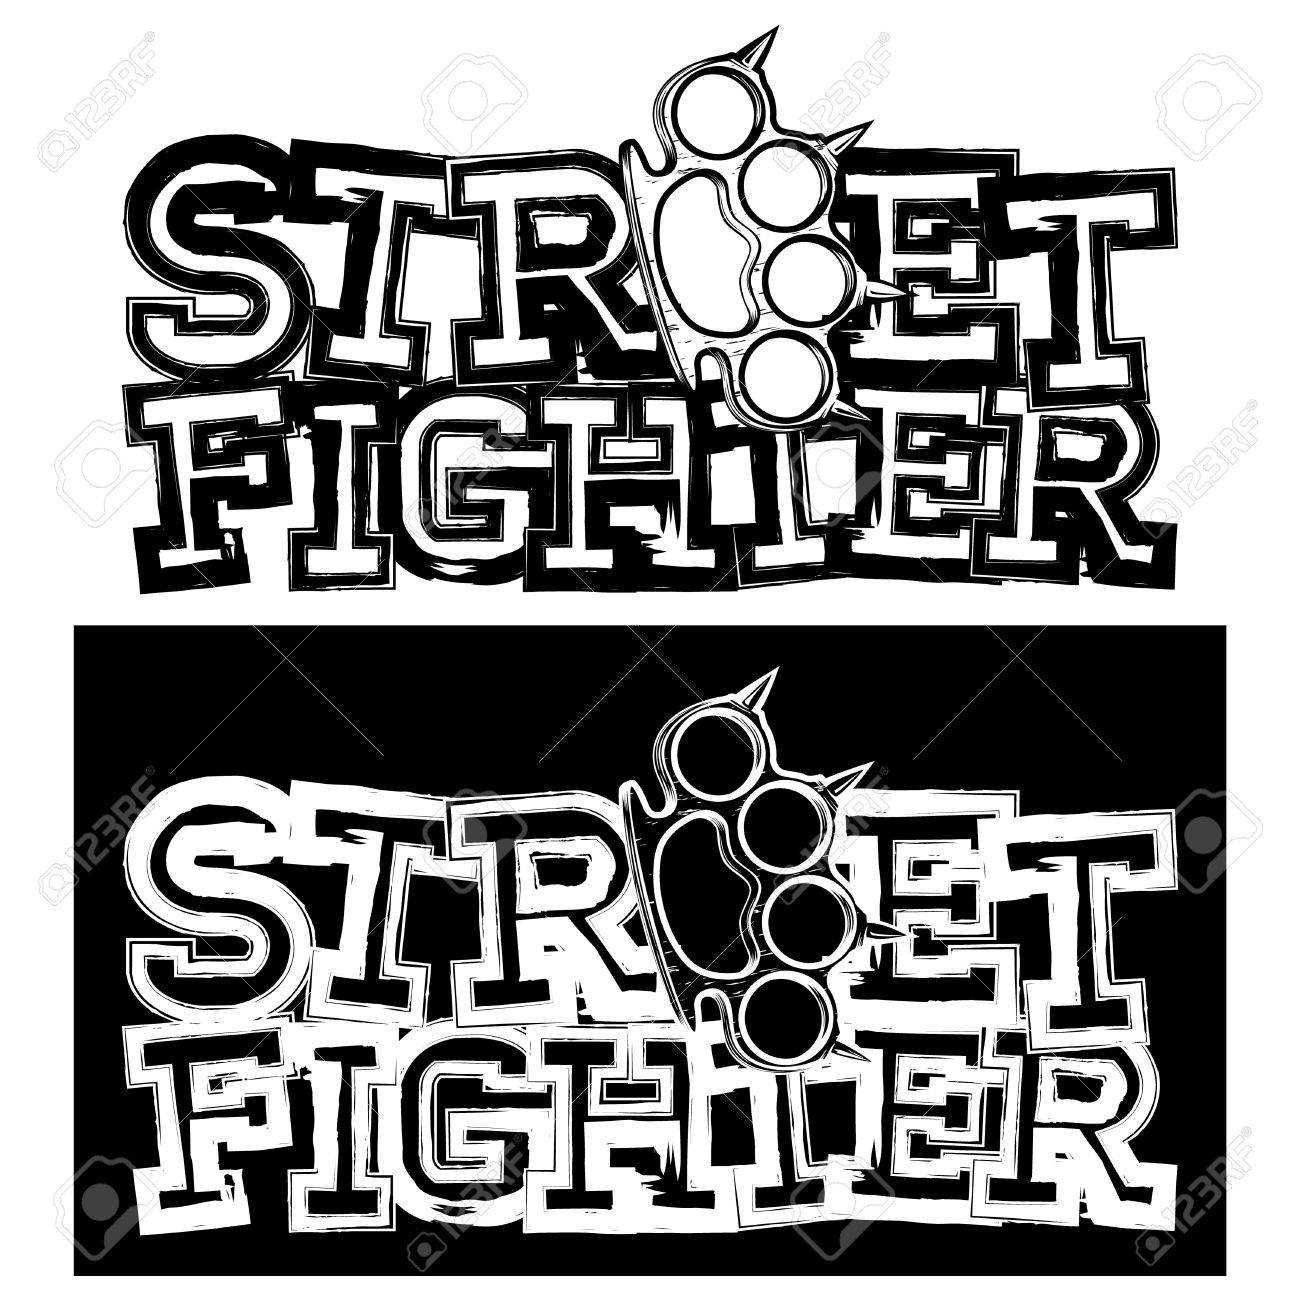 Inscription Street Fighter And Brass Knuckle For Tattoo Or T